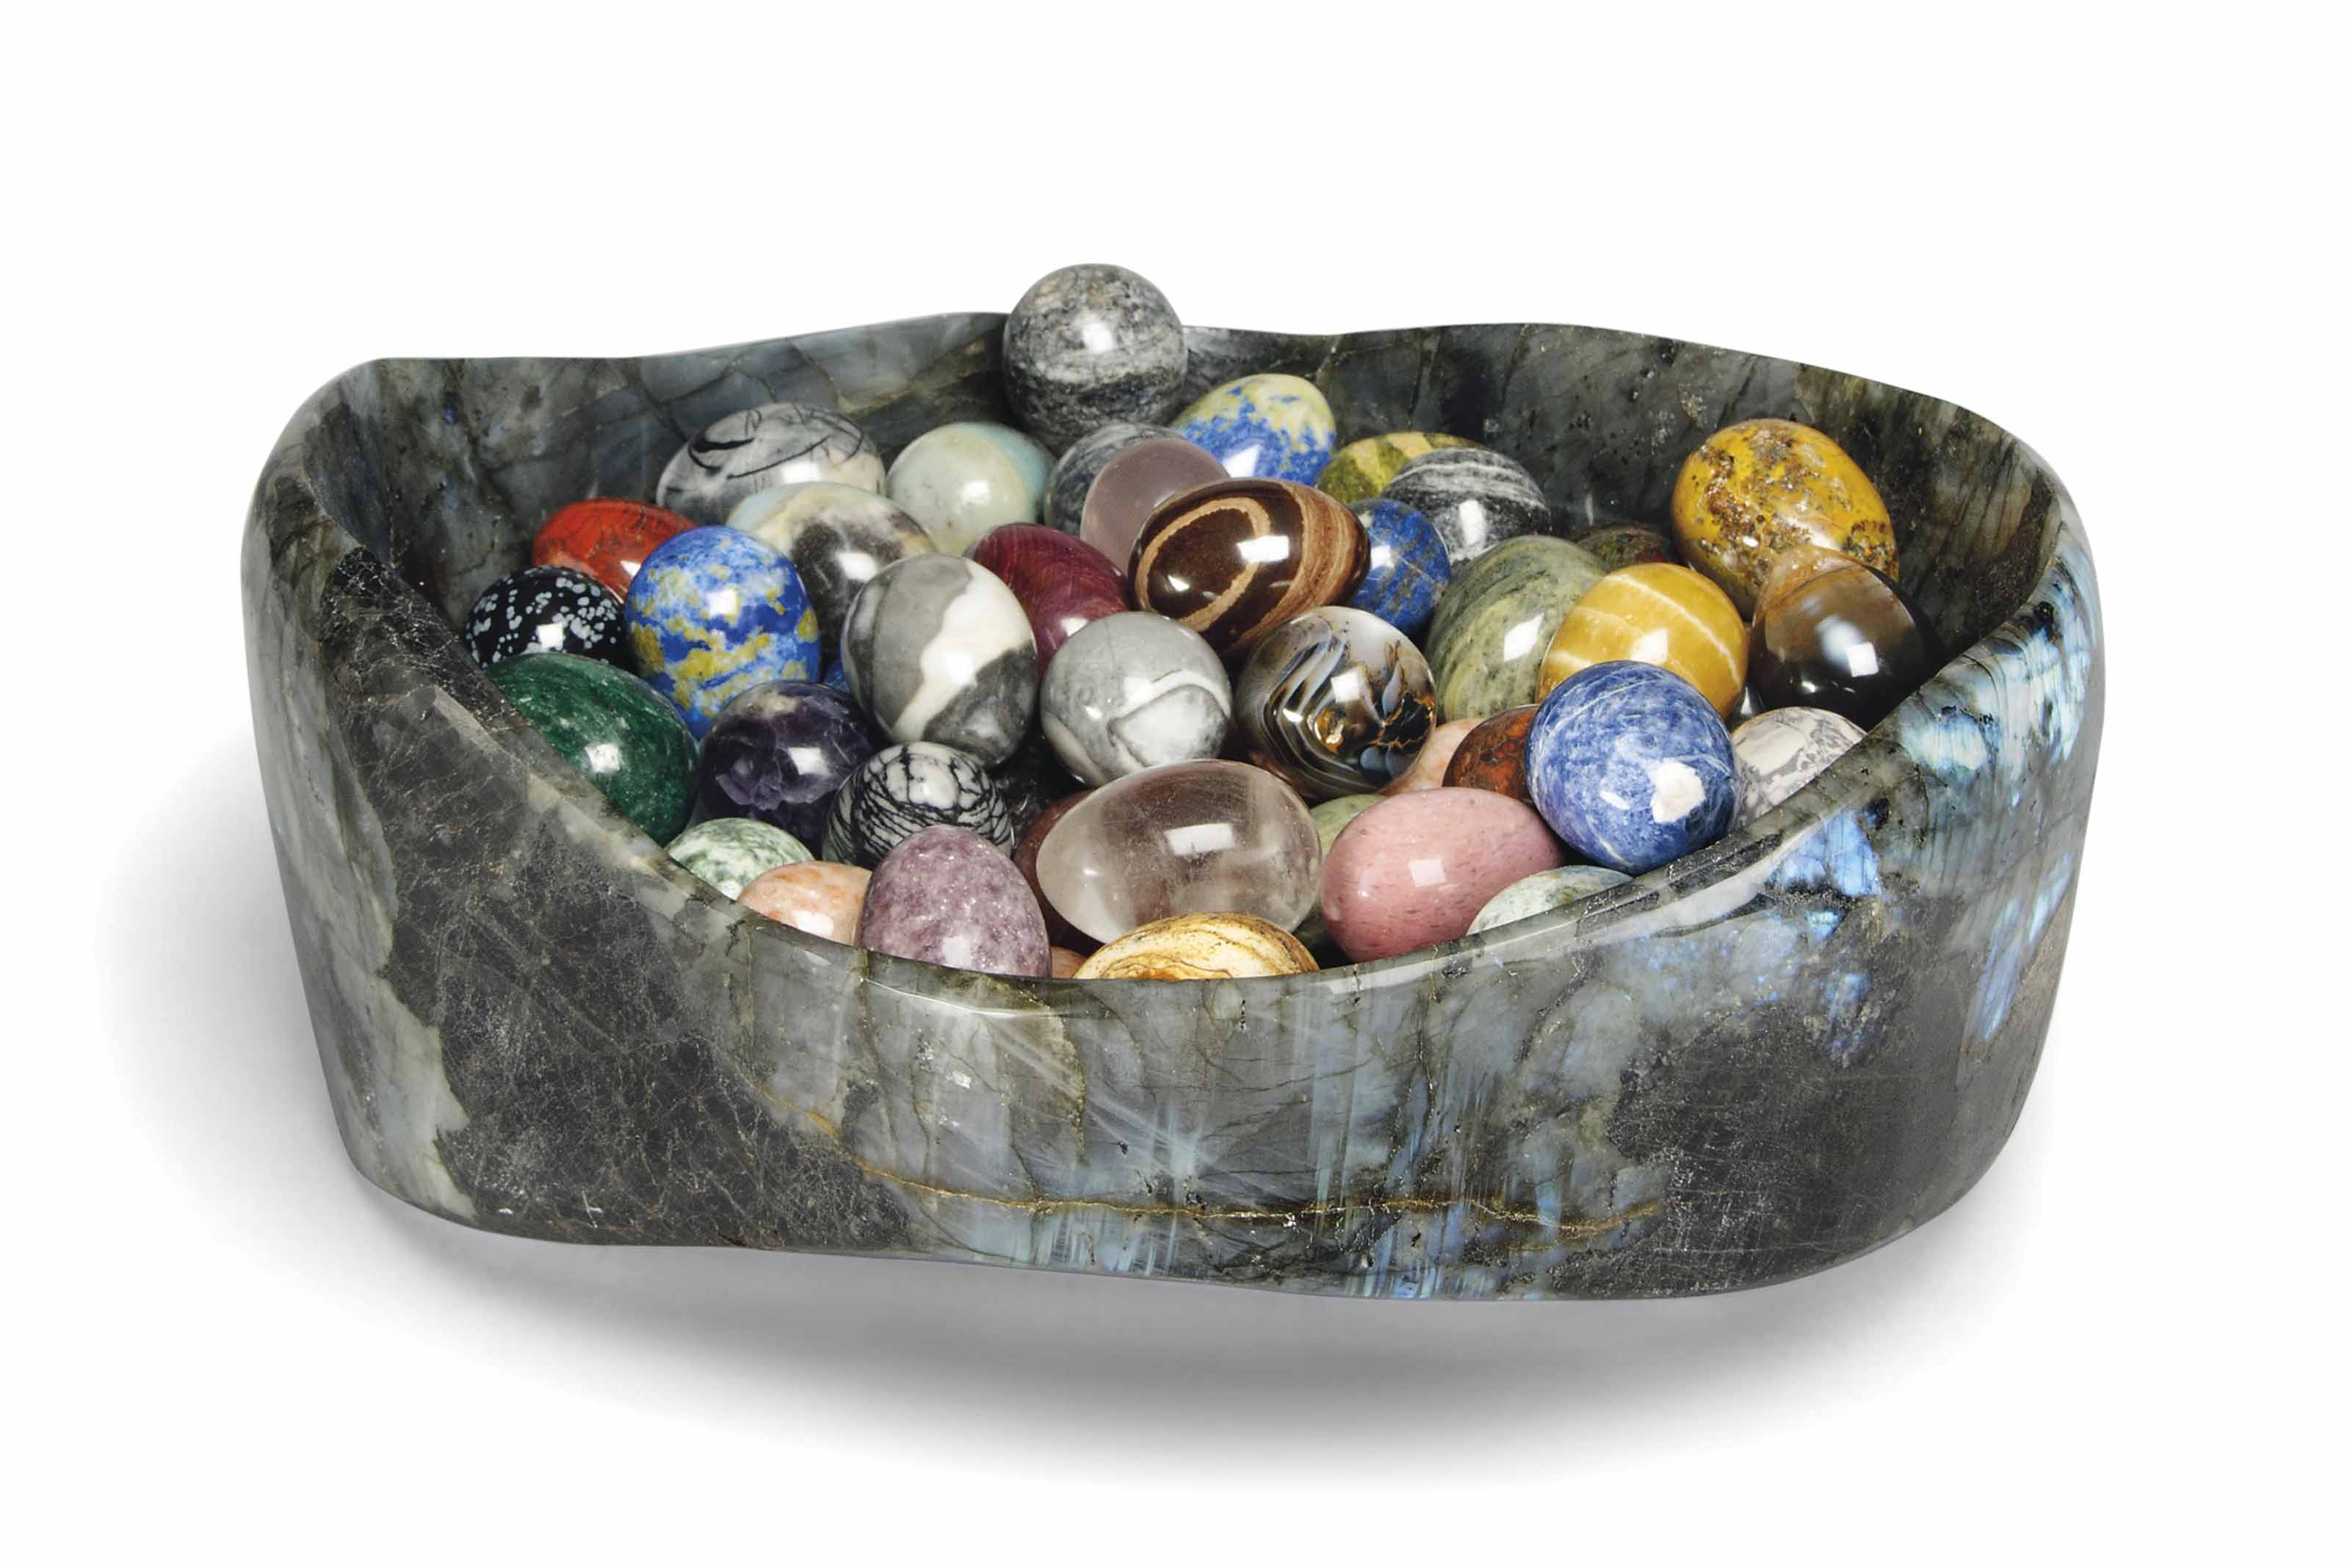 A COLLECTION OF SEVENTY-FIVE MINERAL EGGS IN A LABRADORITE BOWL